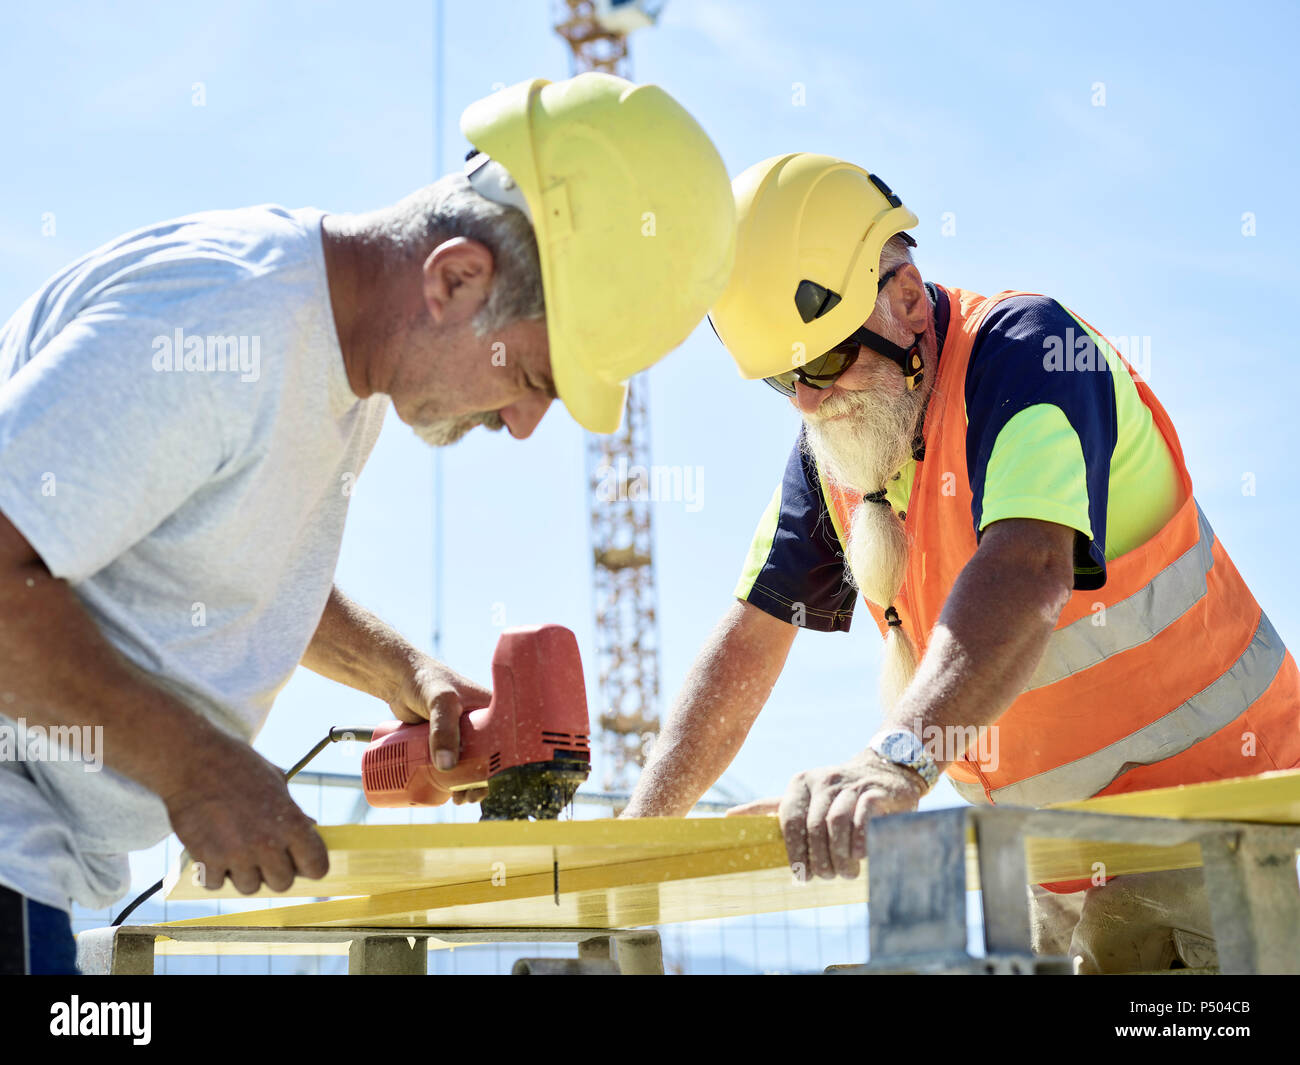 Construction worker cutting plywood with jigsaw on construction site - Stock Image